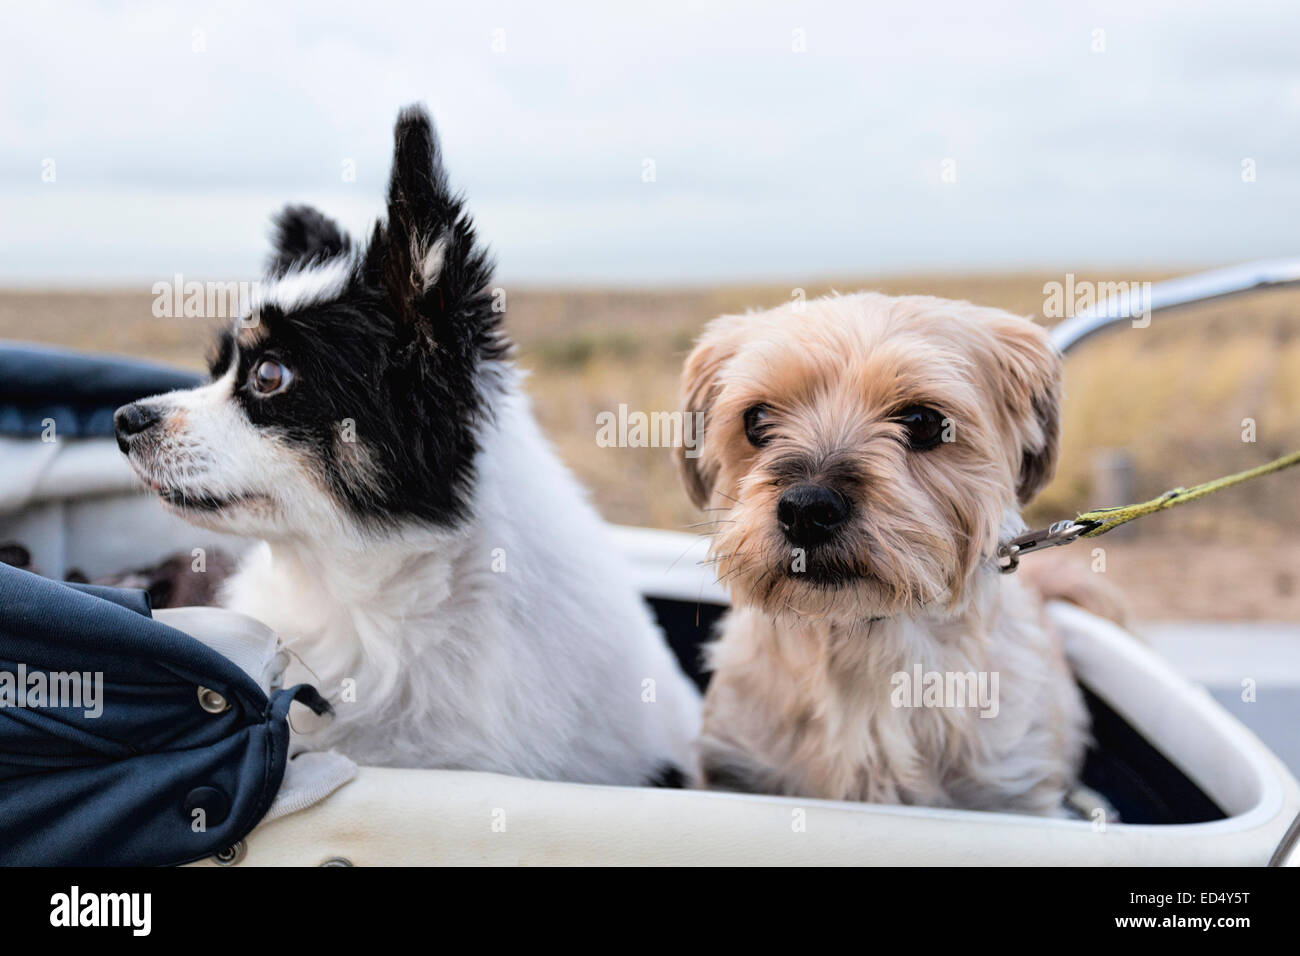 Portrait of two senior dogs, a Papillon, a.k.a. Continental Toy Spaniel and a Yorkshire Terrier seated in a vintage - Stock Image